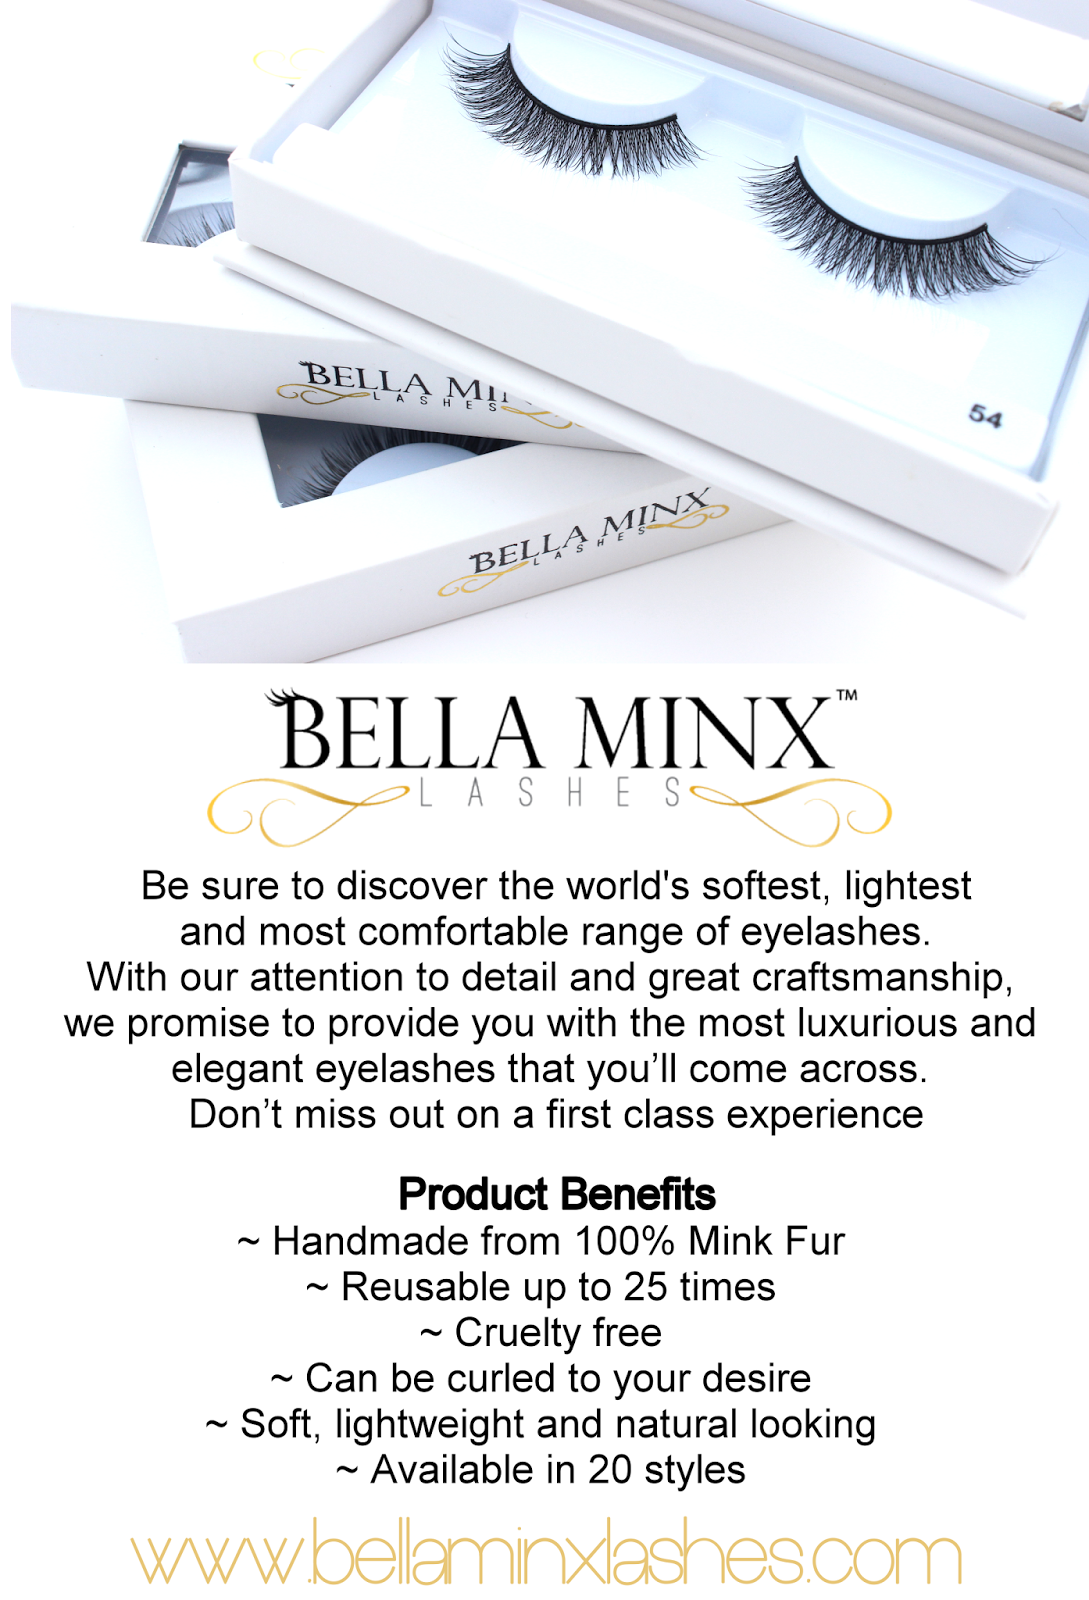 Bella lash coupon code